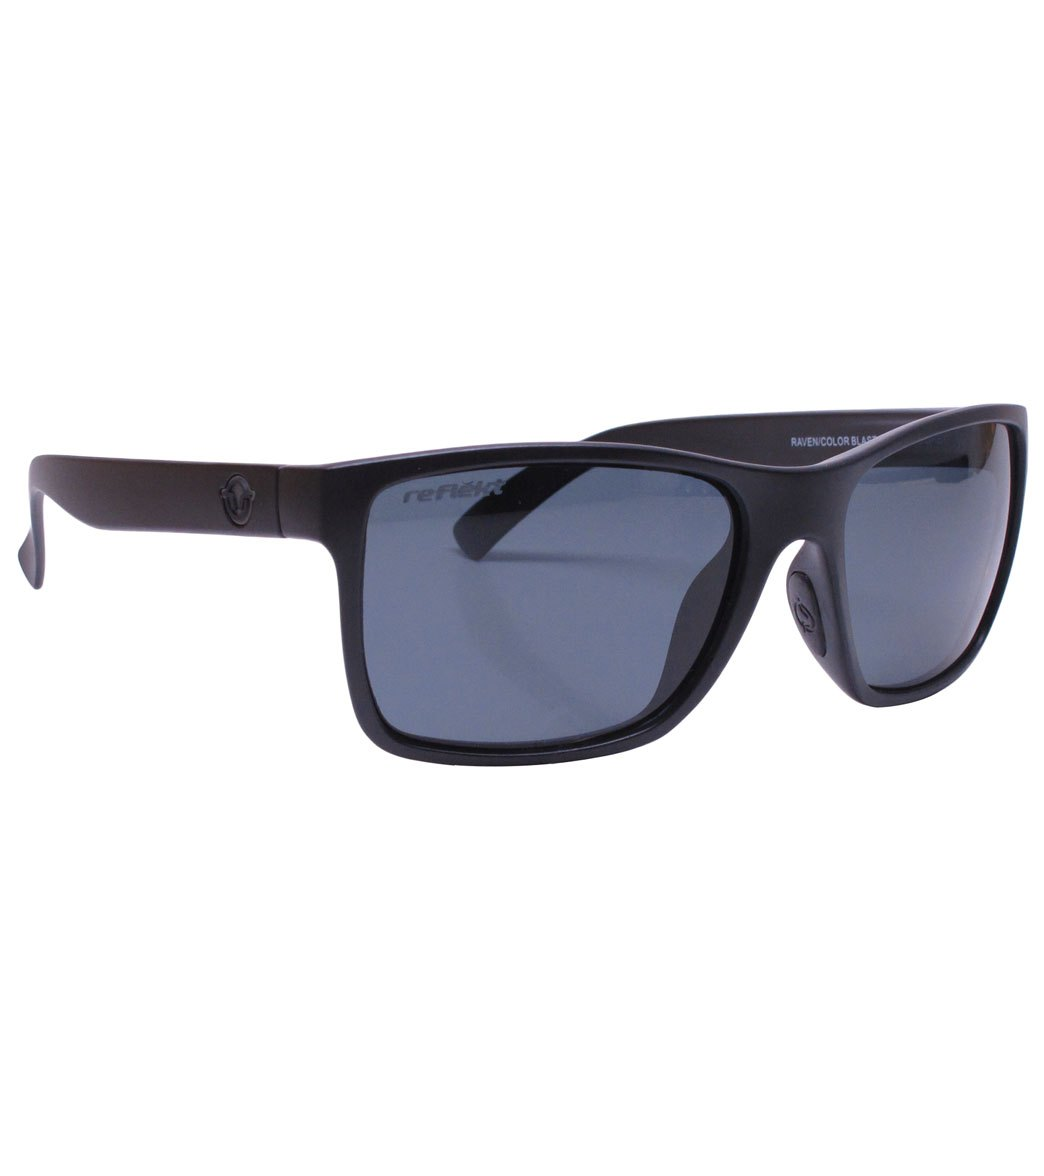 8ed0d7d1fe Unsinkable Polarized Mariner Unsinkable Polarized Floating Sunglasses at  SwimOutlet.com - Free Shipping